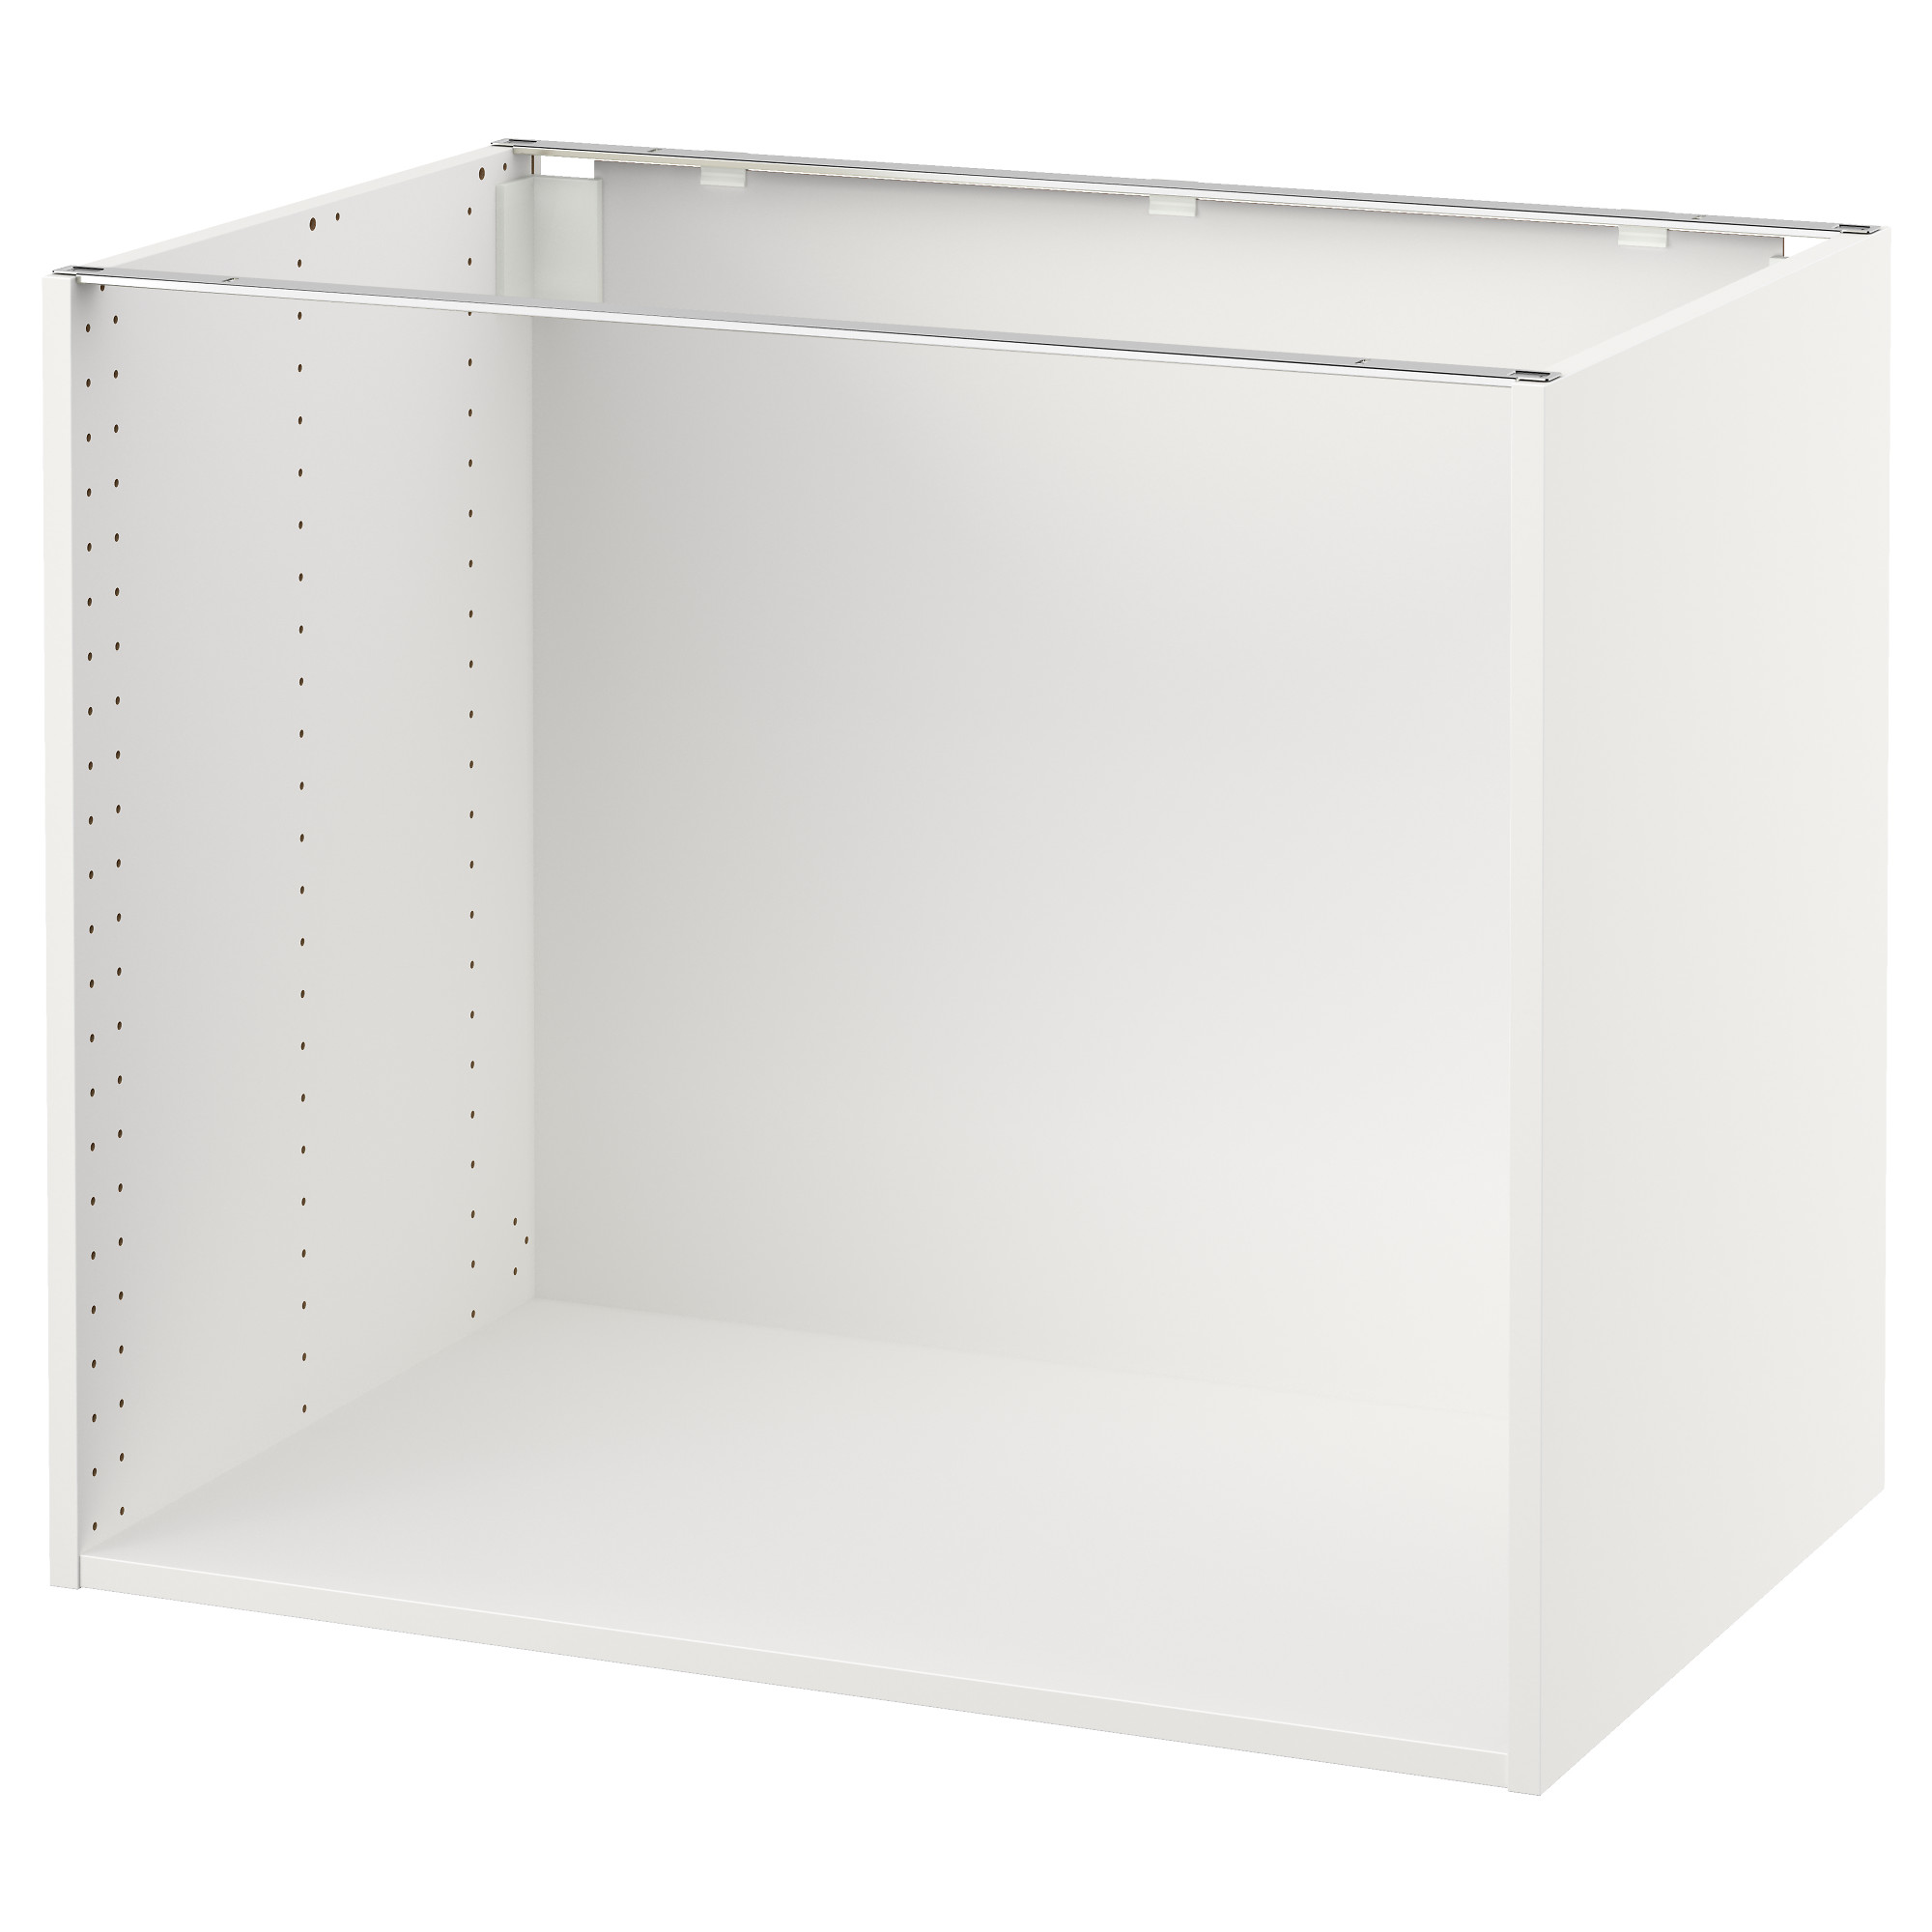 SEKTION base cabinet frame, white Depth without suspension rail: 23 5/8